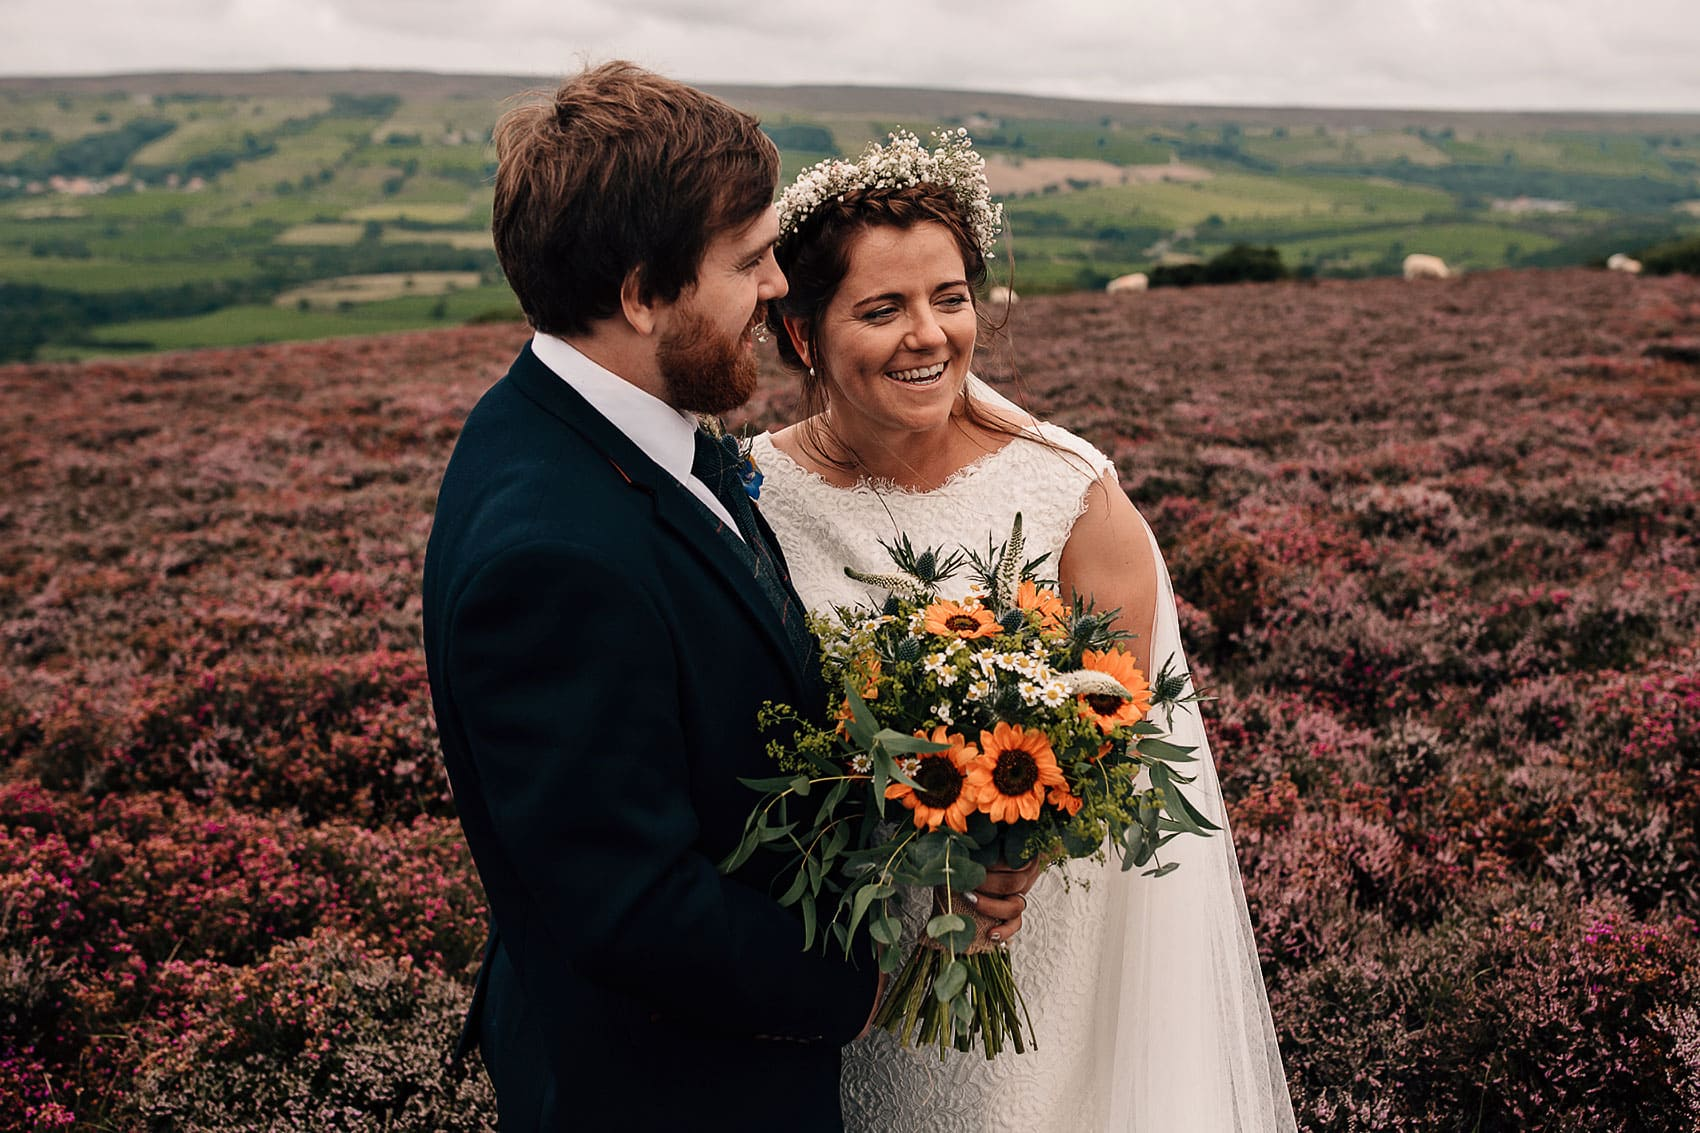 adventurous couples North Yorkshire moors wedding photography